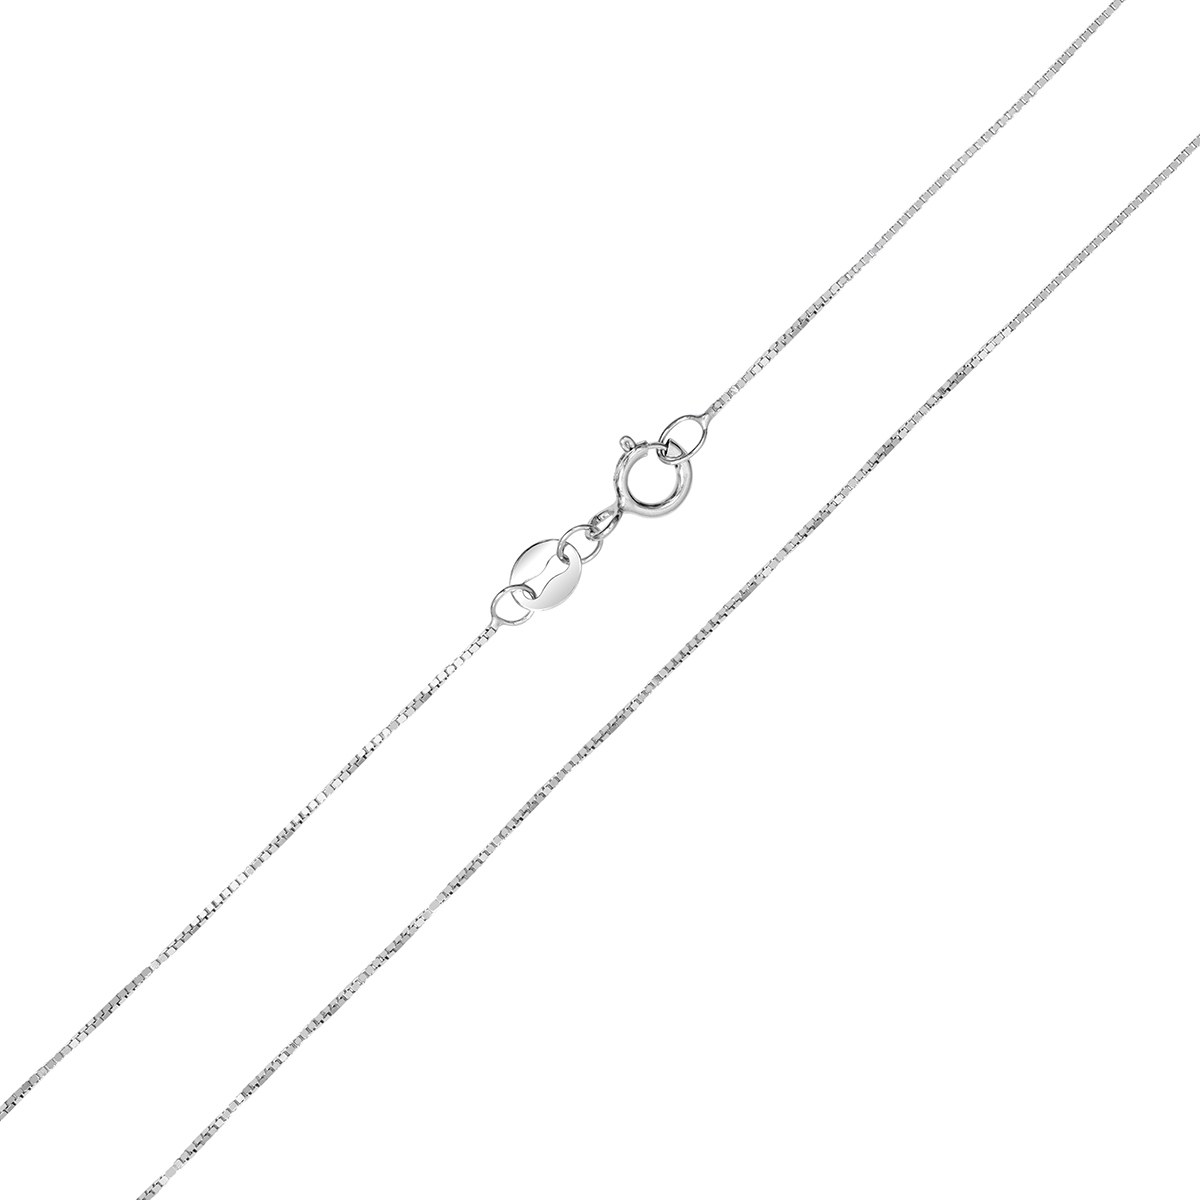 10k White Gold 0.6mm Classic Box Chain with Spring Ring Clasp - 16 Inch